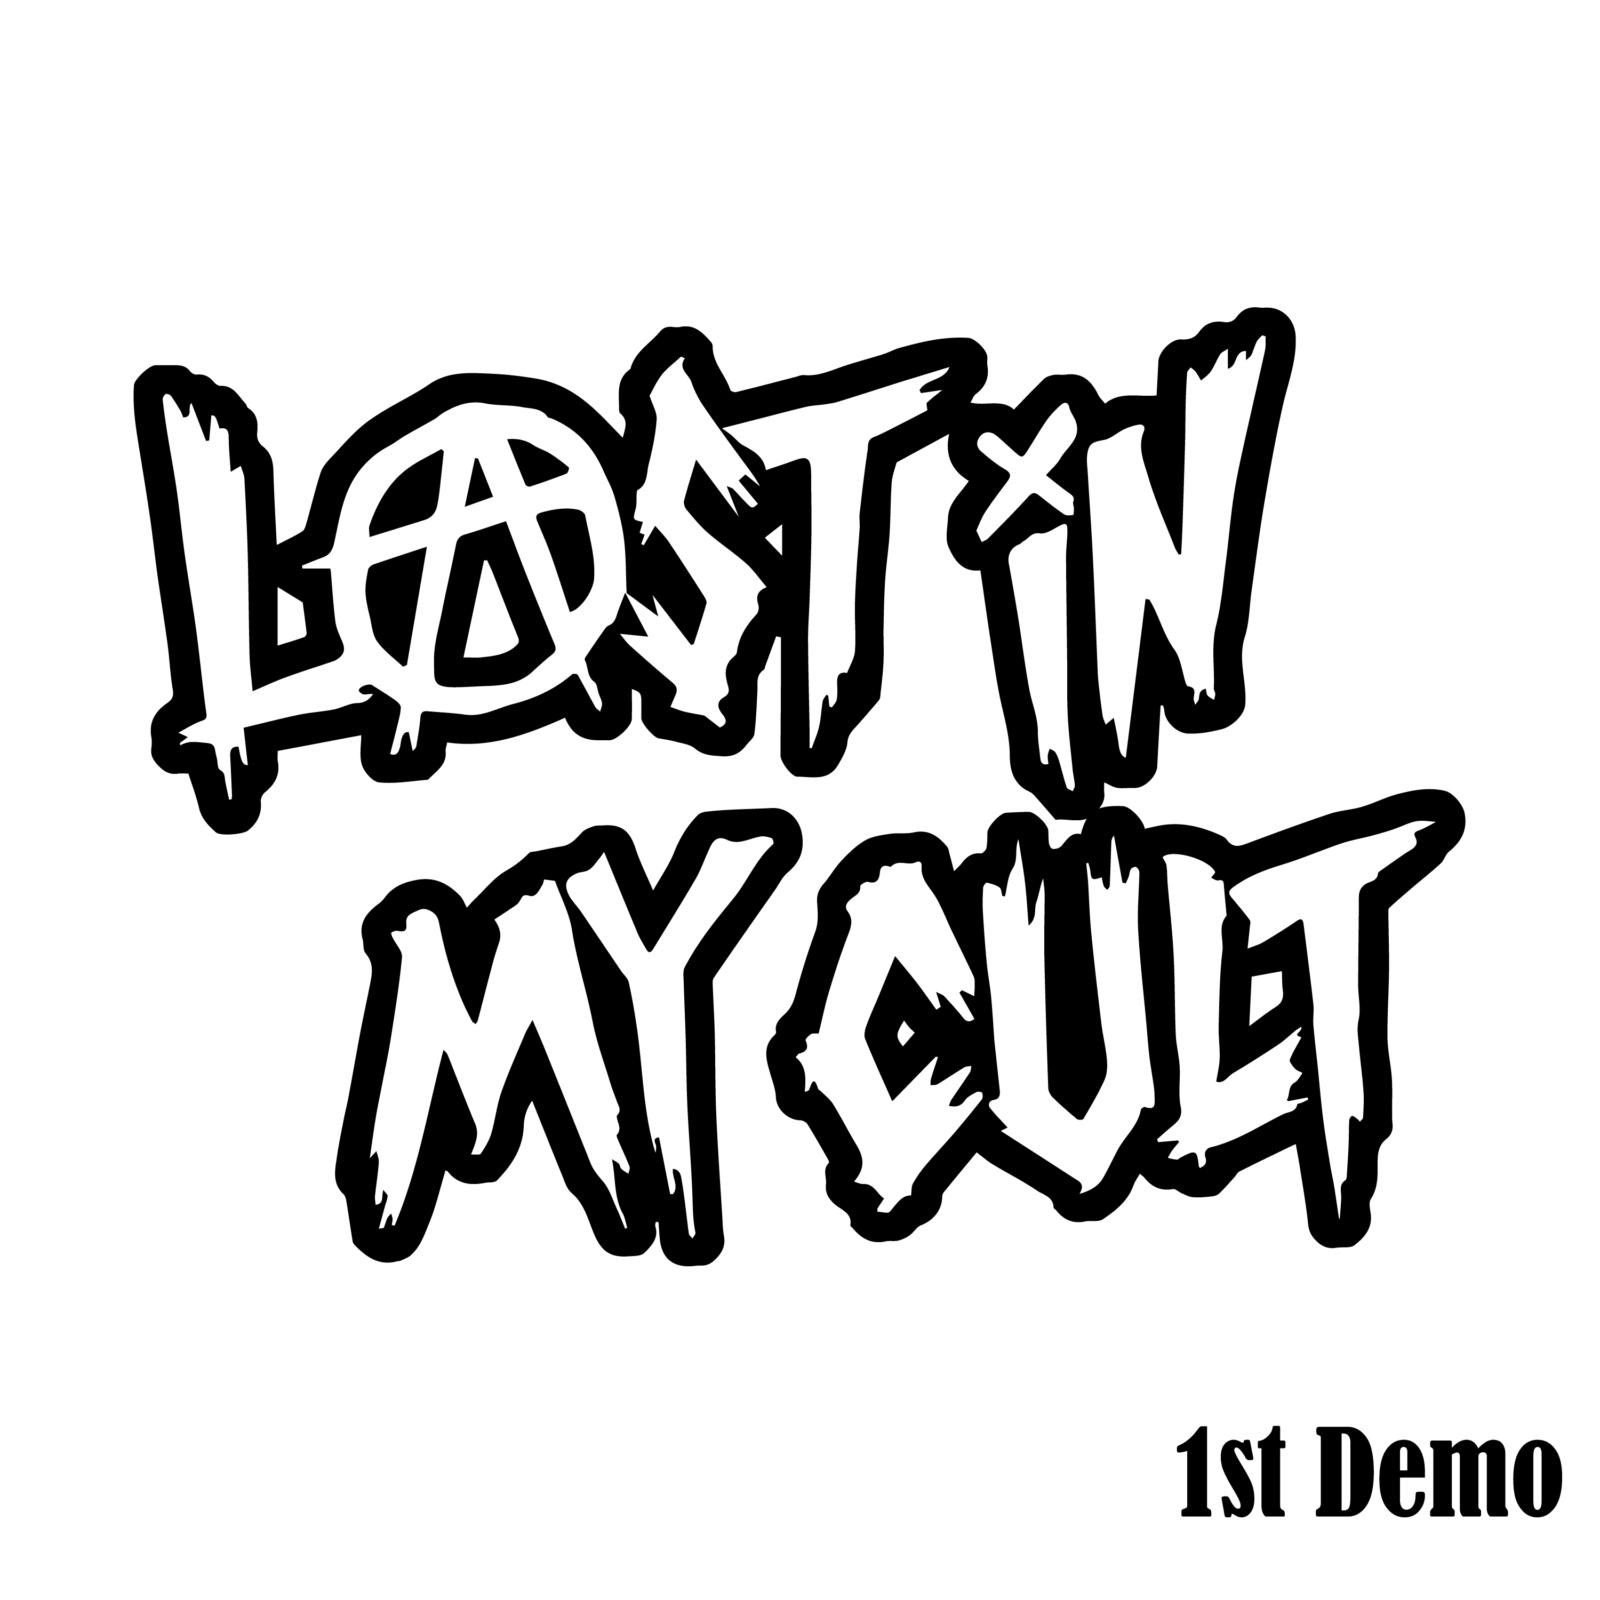 LAST IN MY CULT – 1st Demo [FLAC / 24bit Lossless / WEB] [2019.02.03]